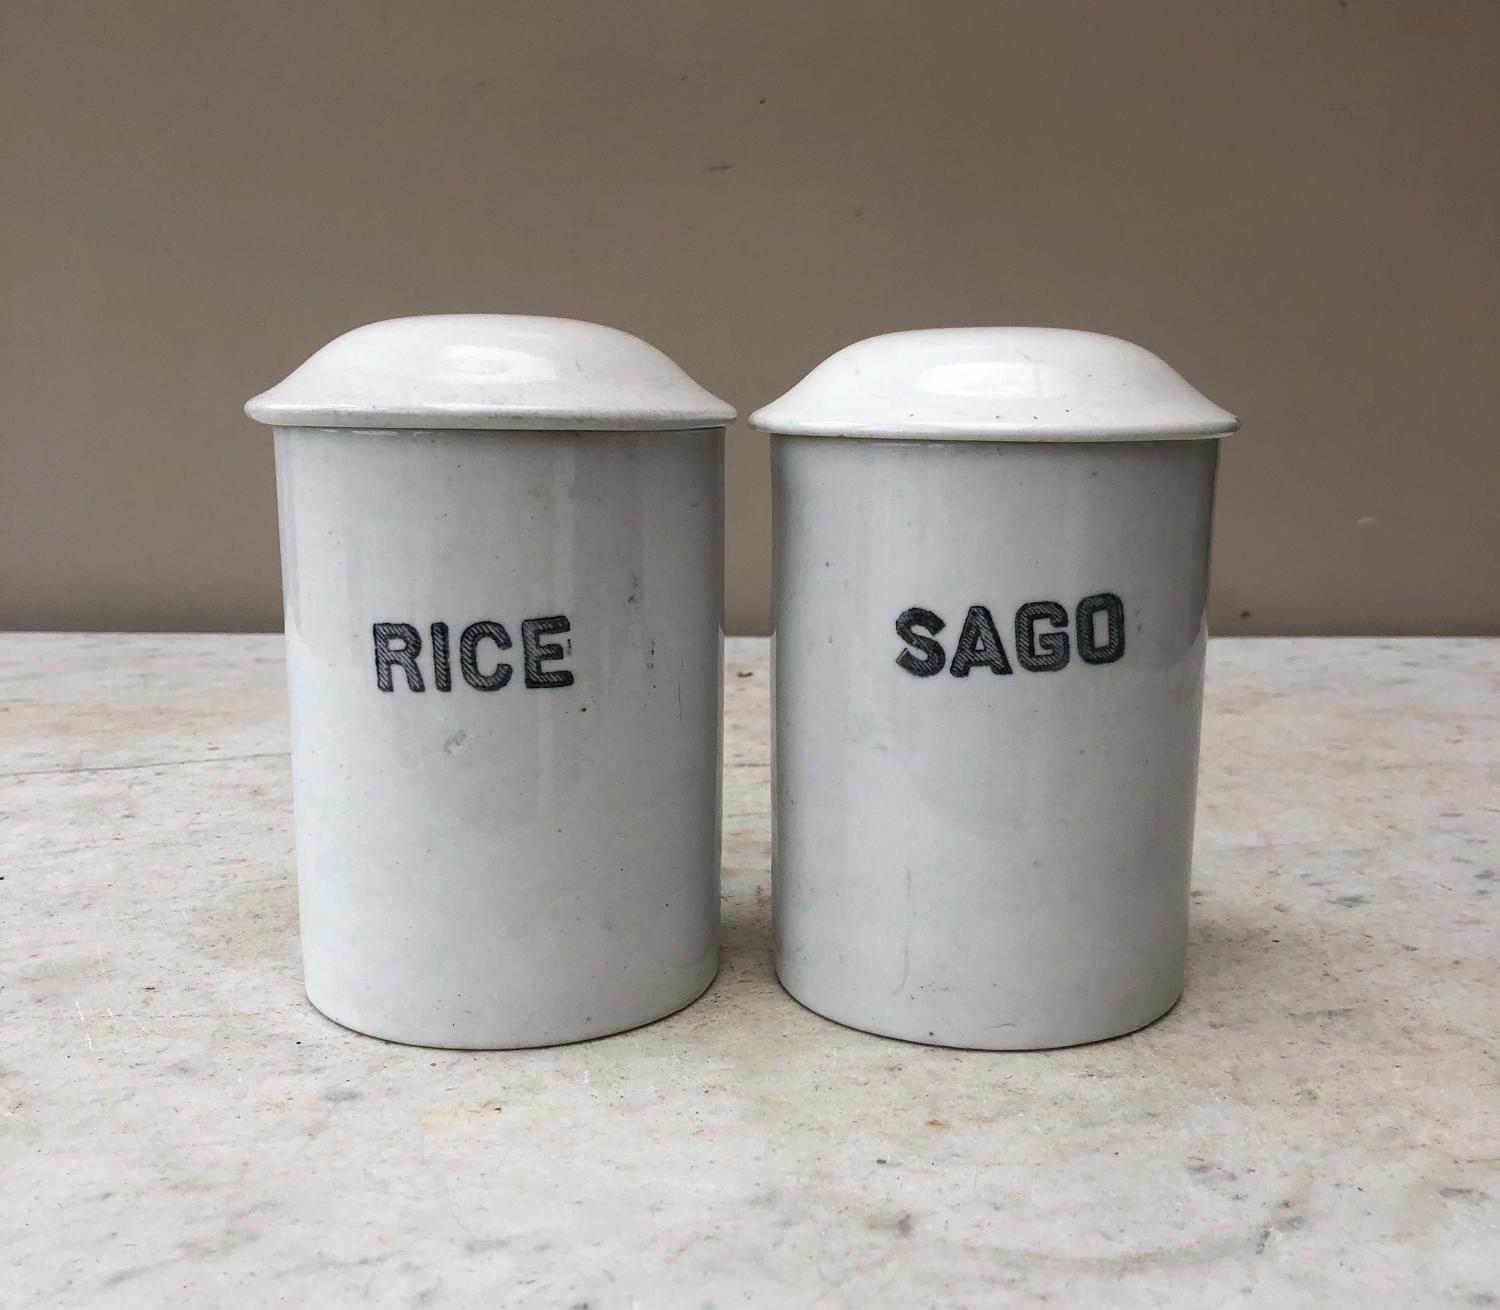 Two Edwardian White Ironstone Kitchen Storage Jars - Rice & Sago